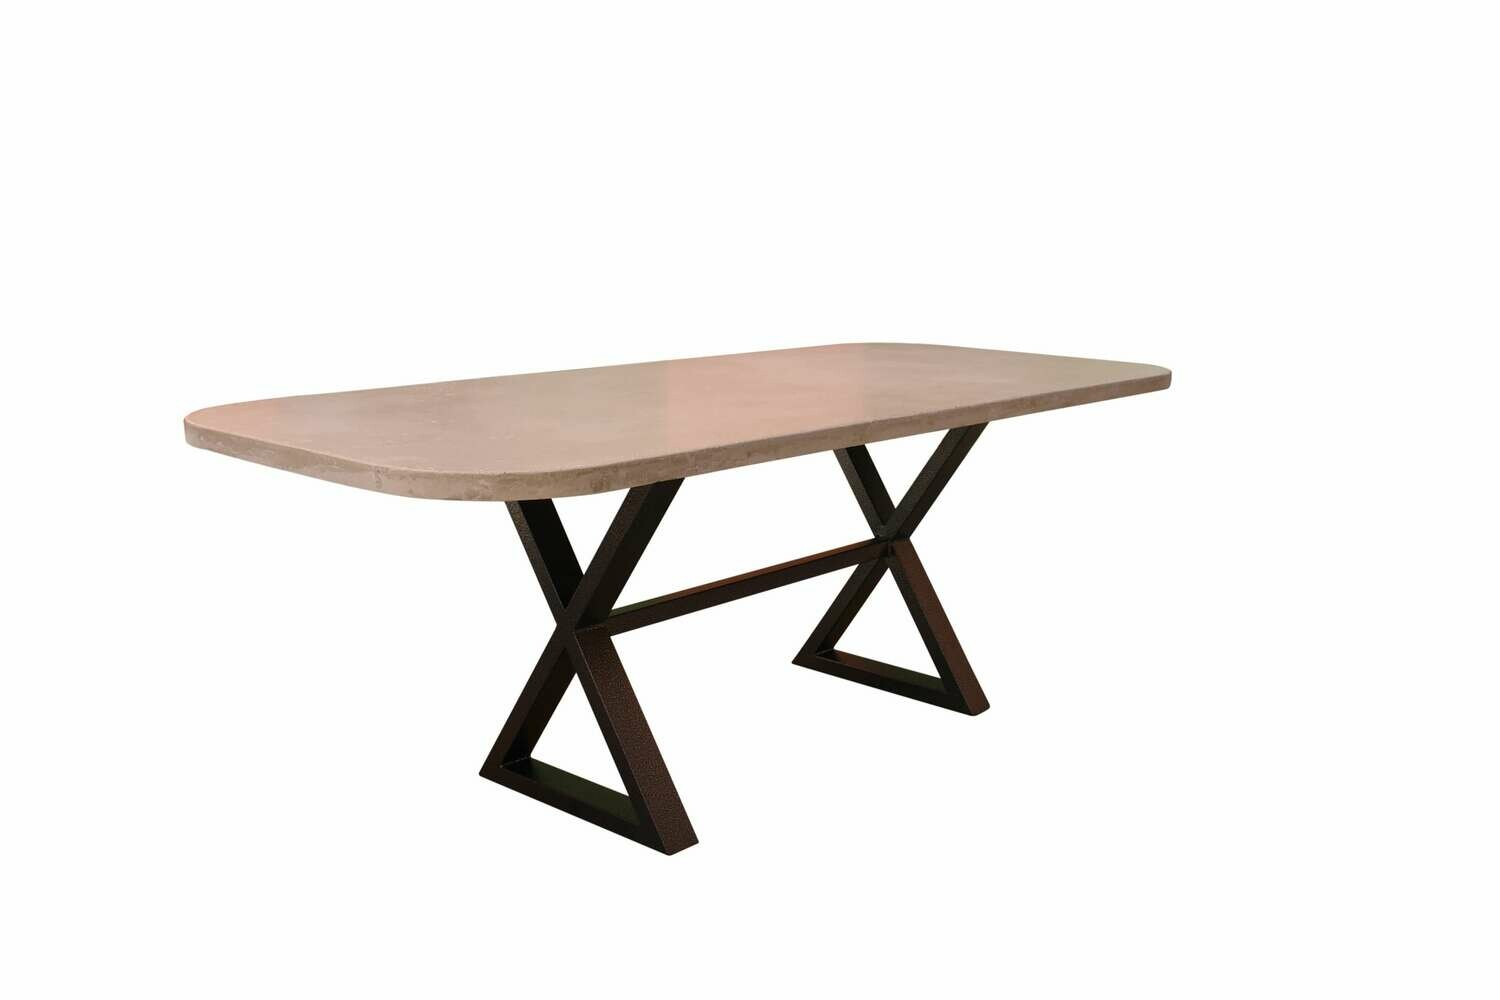 7' Concrete & Metal Dining Table